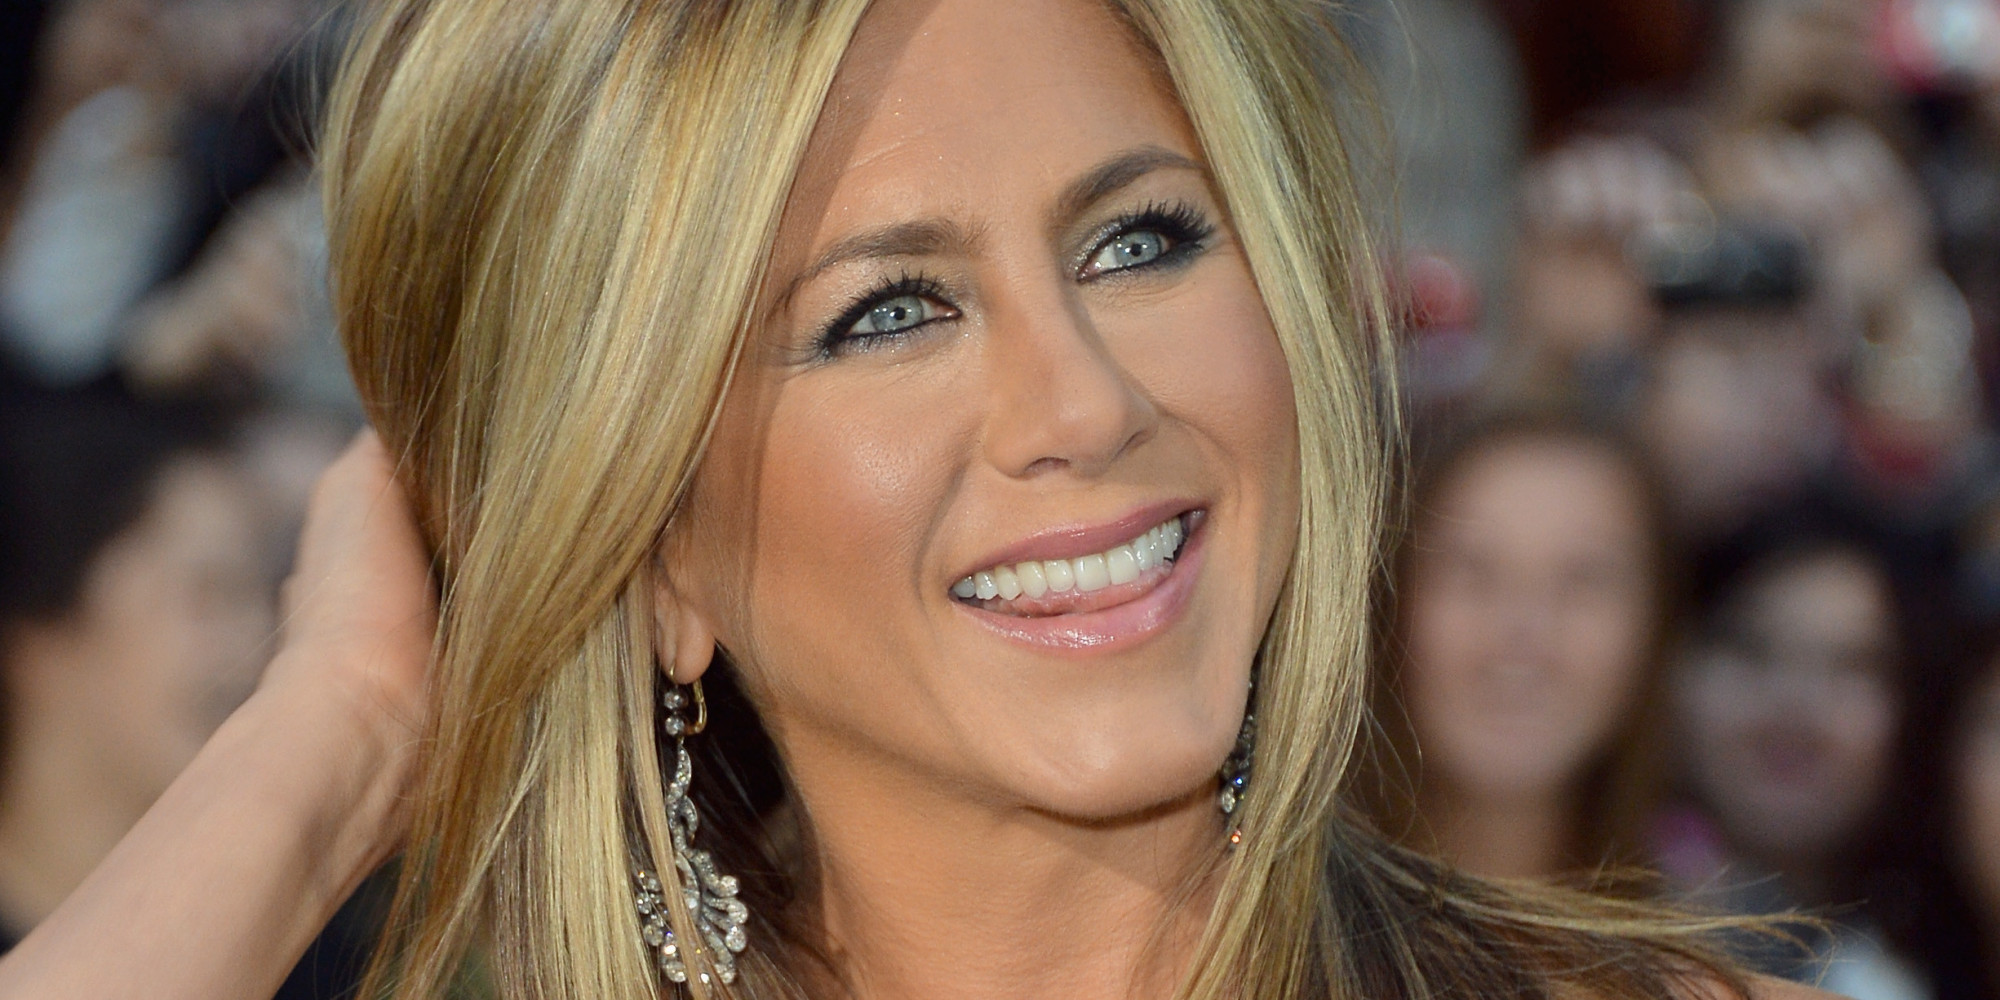 Rolex wearer Jennifer Aniston supports husband at Critics' Choice Awards